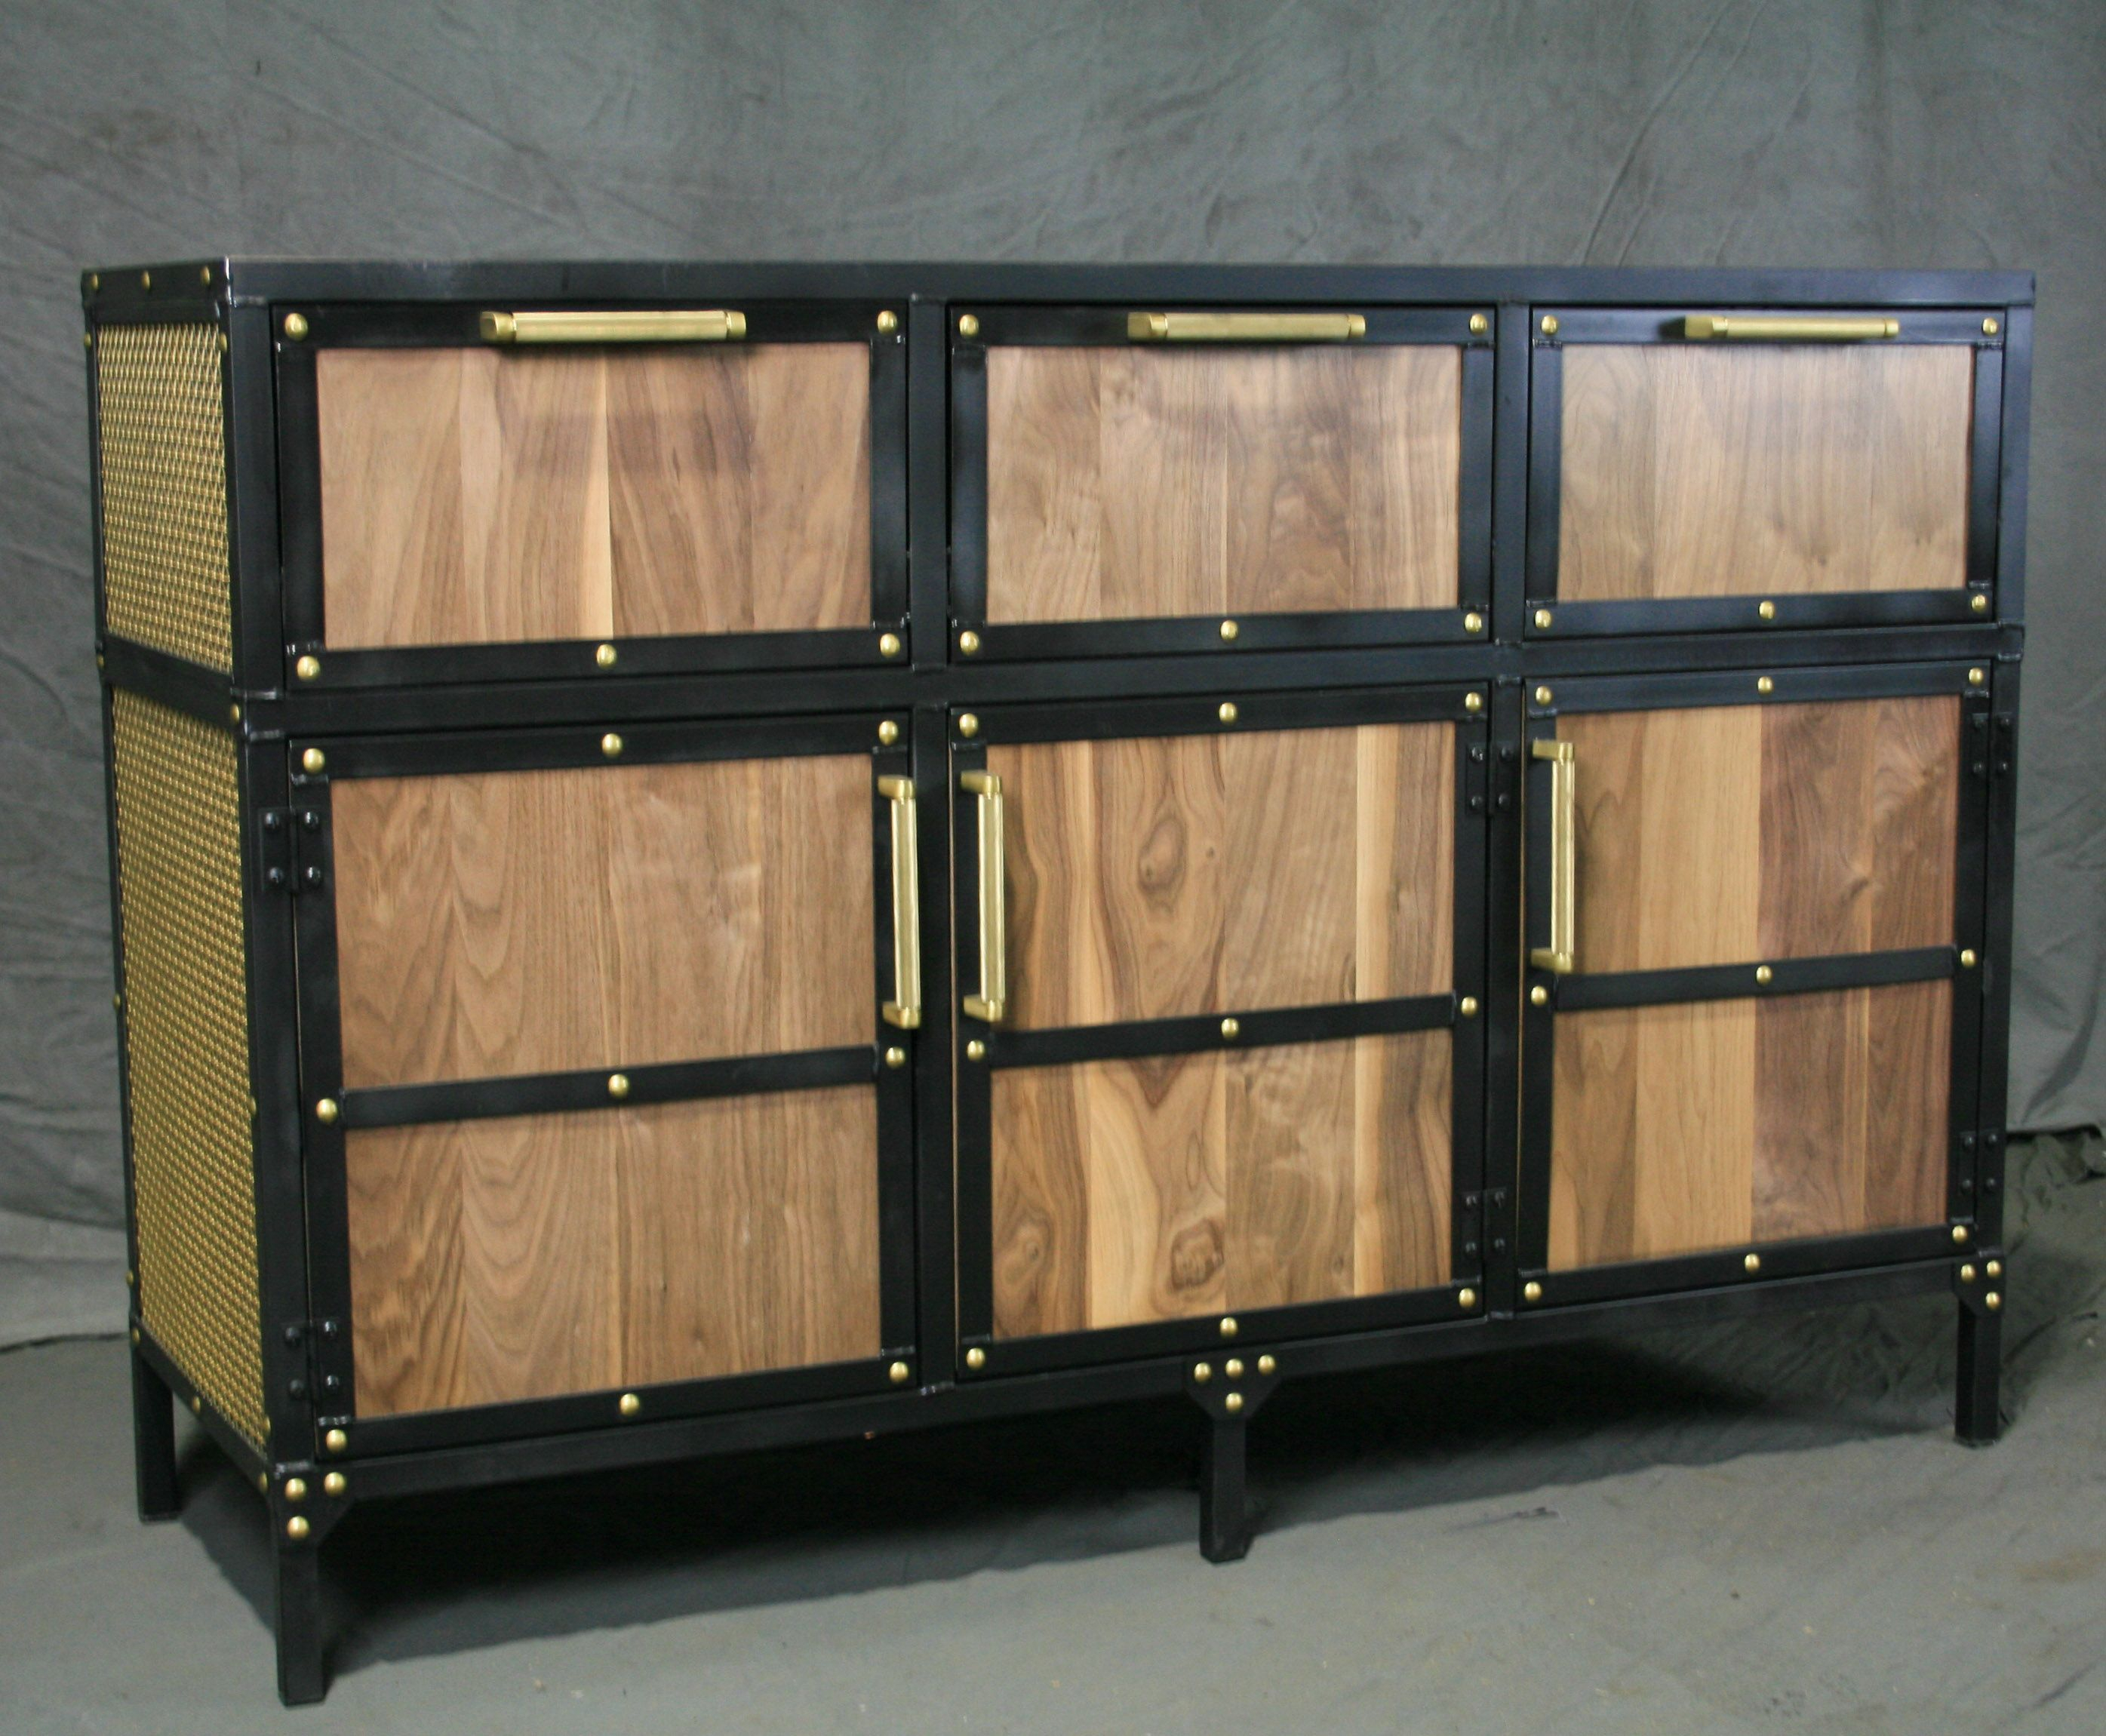 Buy A Handmade Industrial Sideboard With Brass Accents pertaining to Industrial Concrete-Like Buffets (Image 10 of 30)